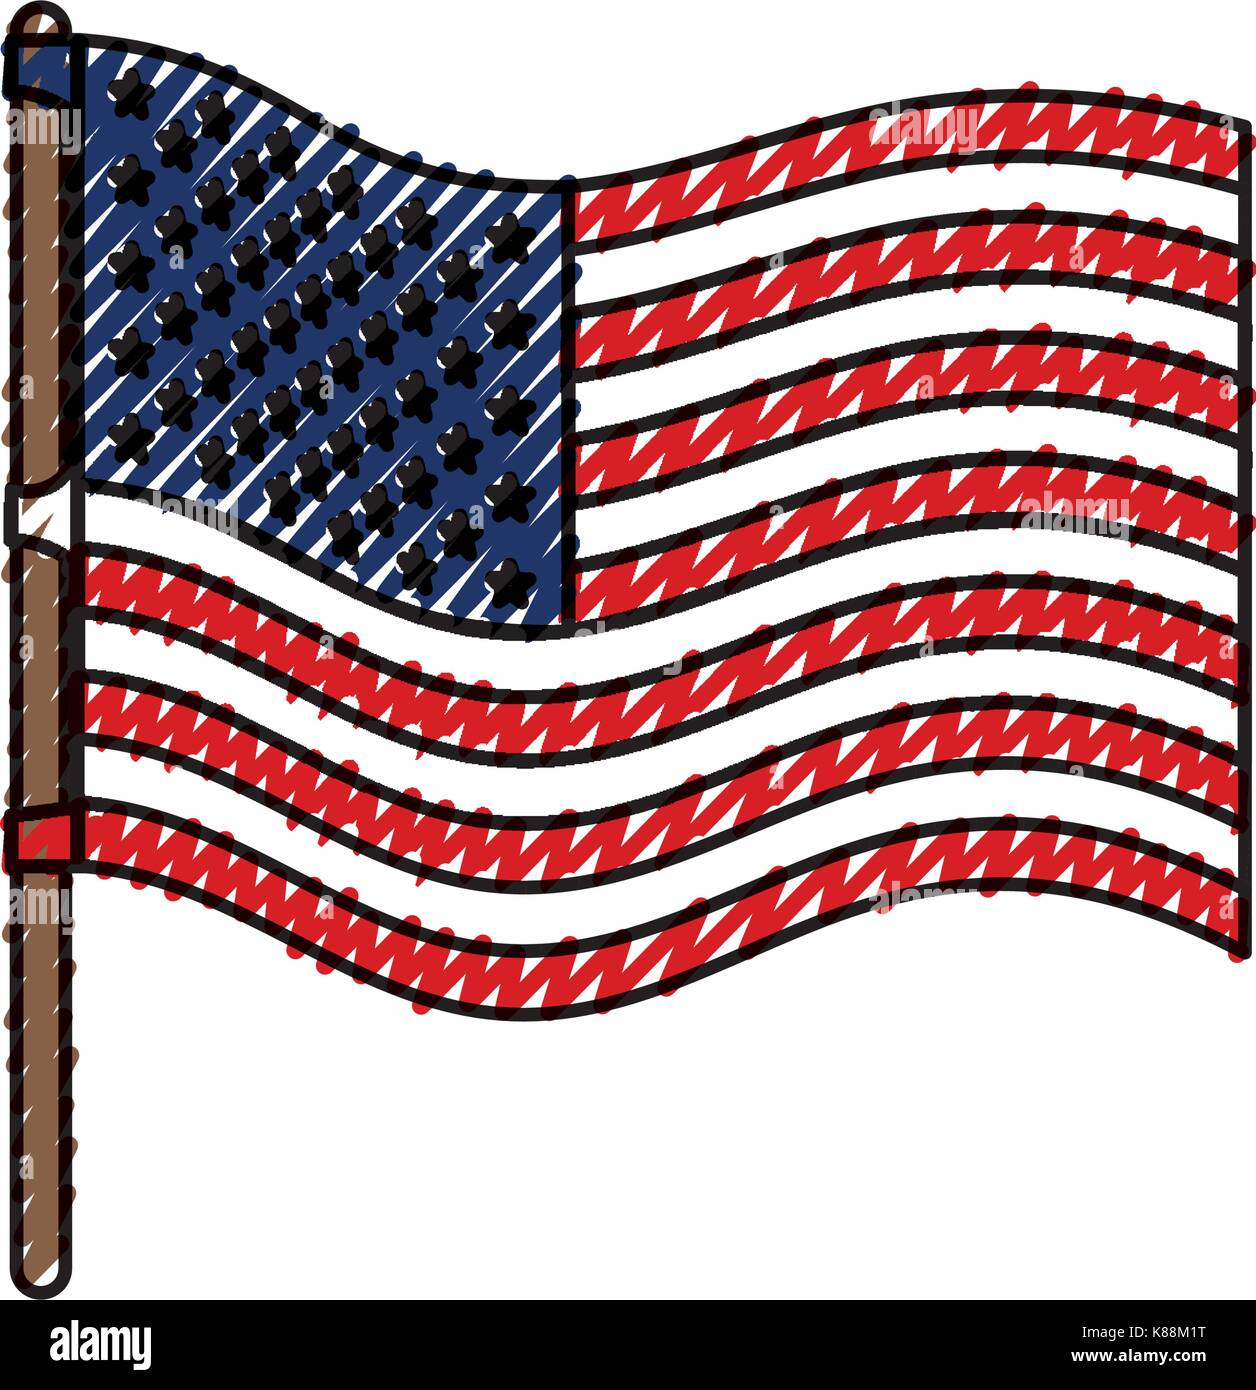 flag united states of america wave in flagpole and colored crayon silhouette - Stock Image